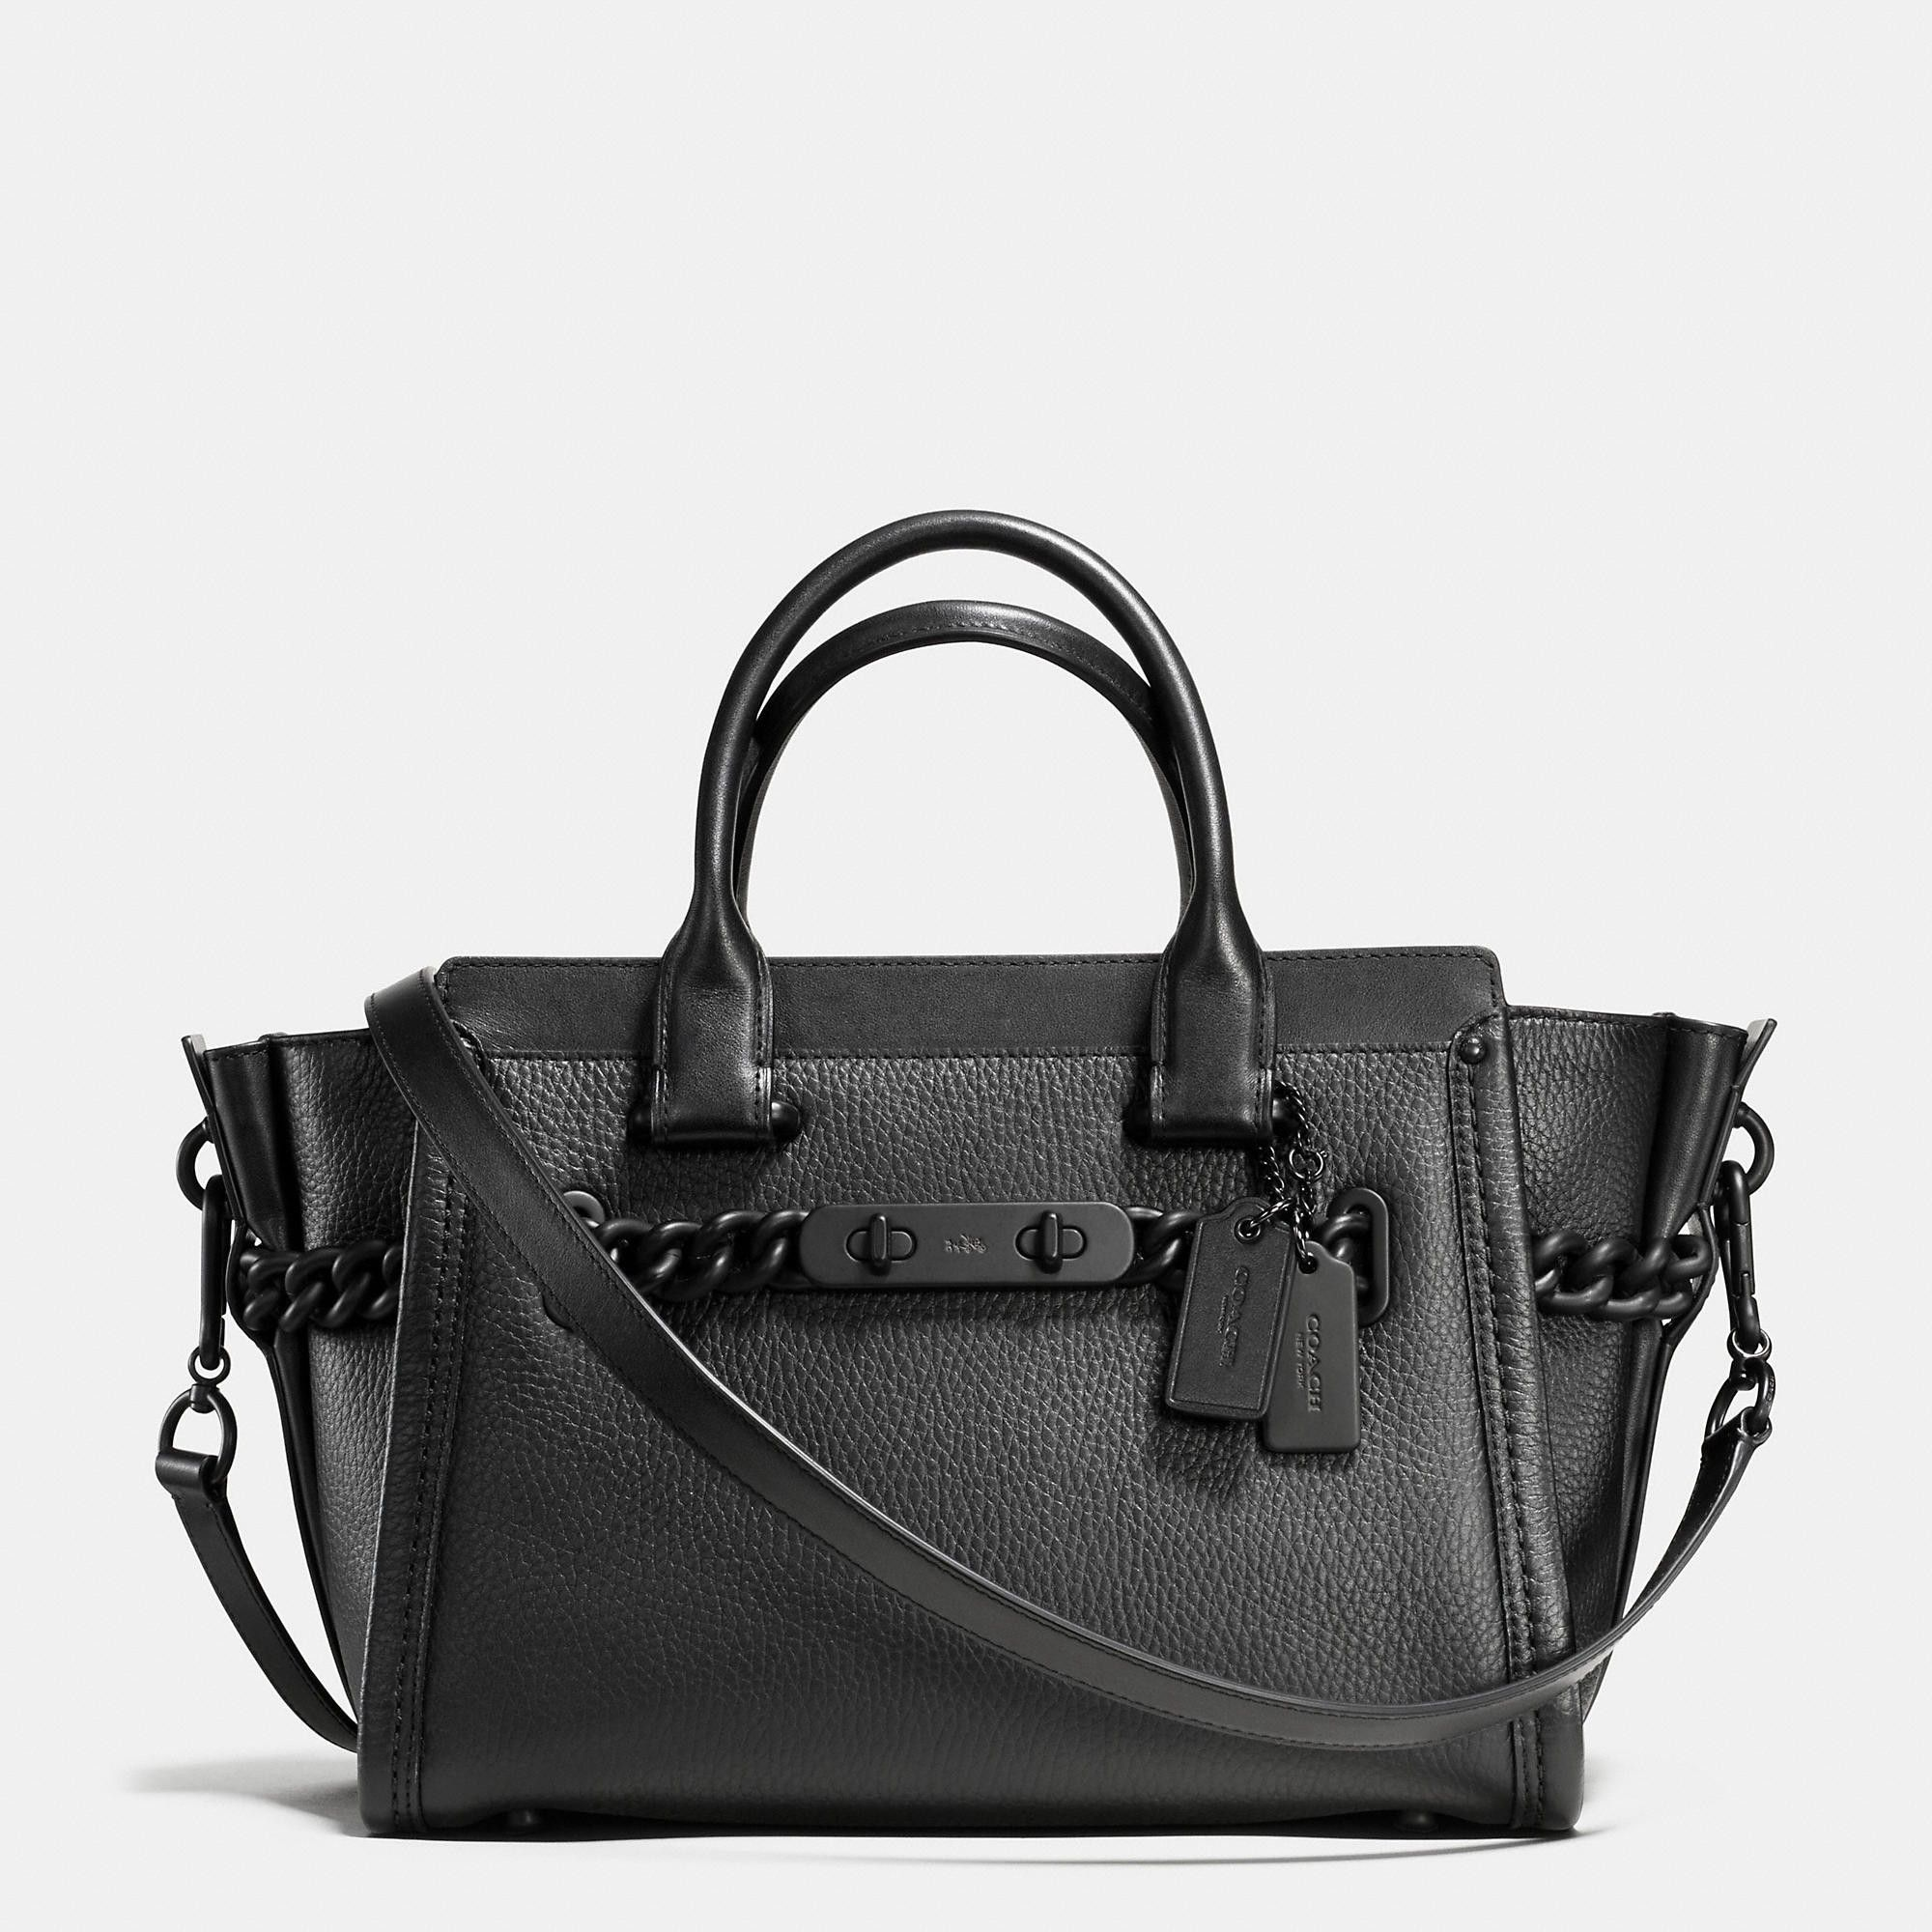 5127783e5f COACH Coach Id Swagger 27 In Pebble Leather.  coach  bags  shoulder bags   hand bags  leather  lining